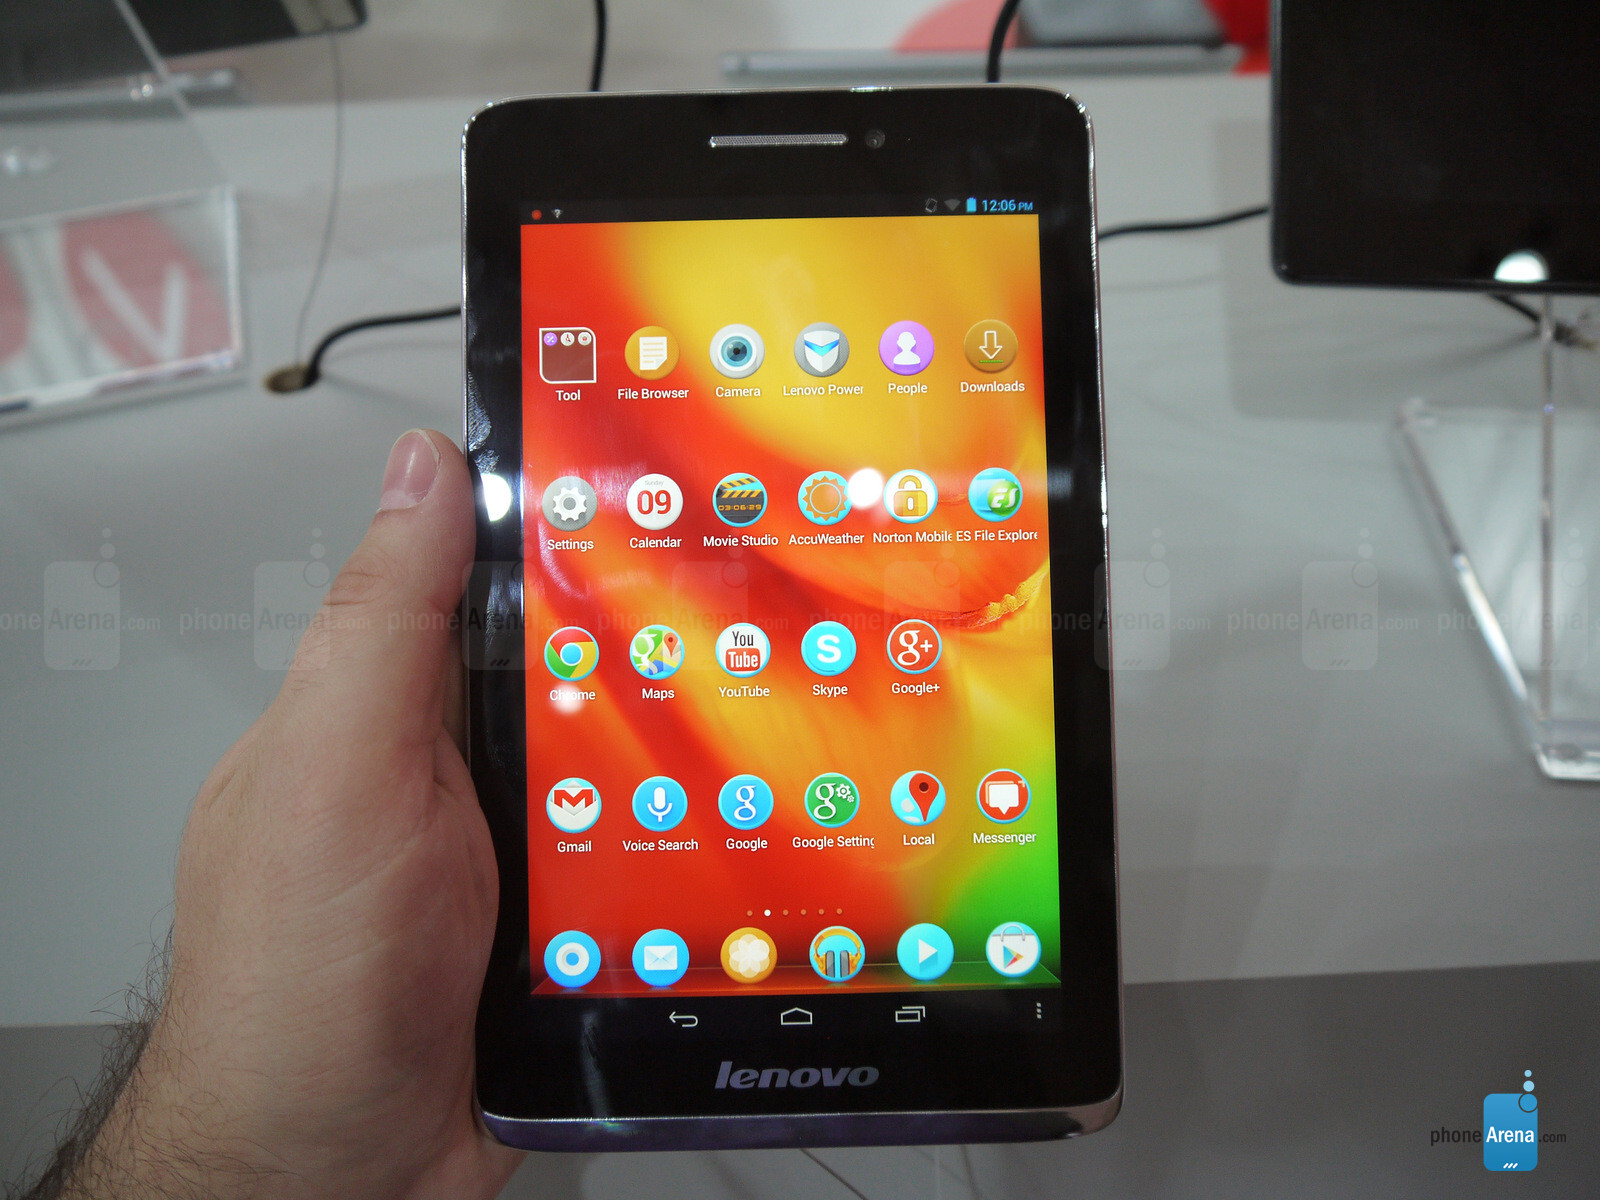 Lenovo S5000 Hands-on | PhoneArena reviews